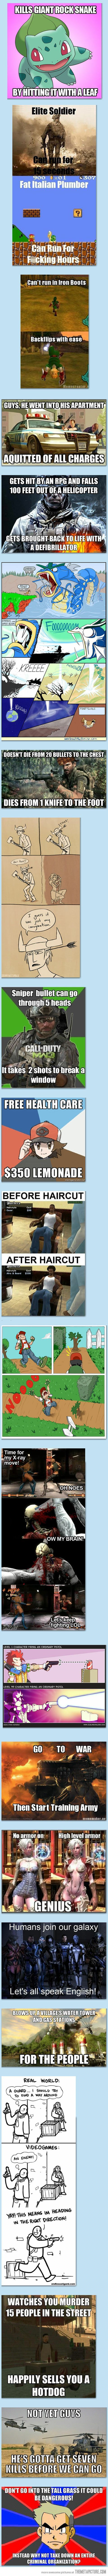 Video Game Logic: